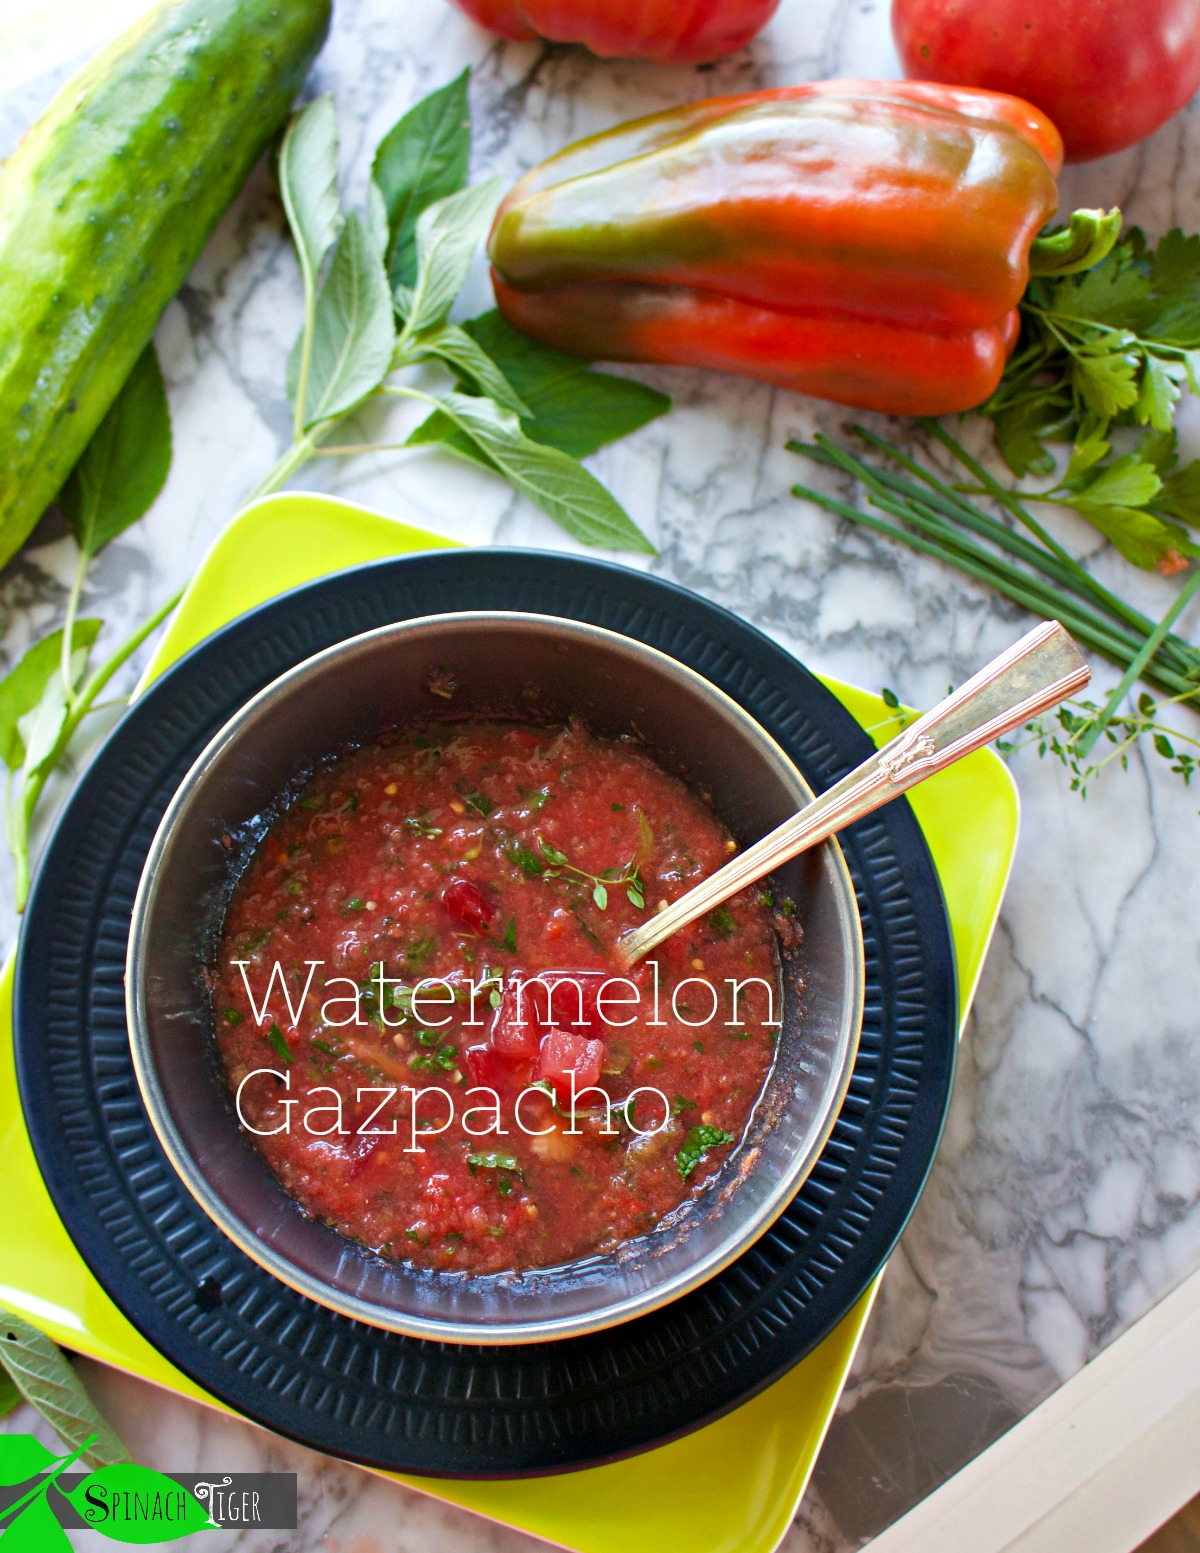 How to Make Watermelon Gazpacho from Spinach Tiger